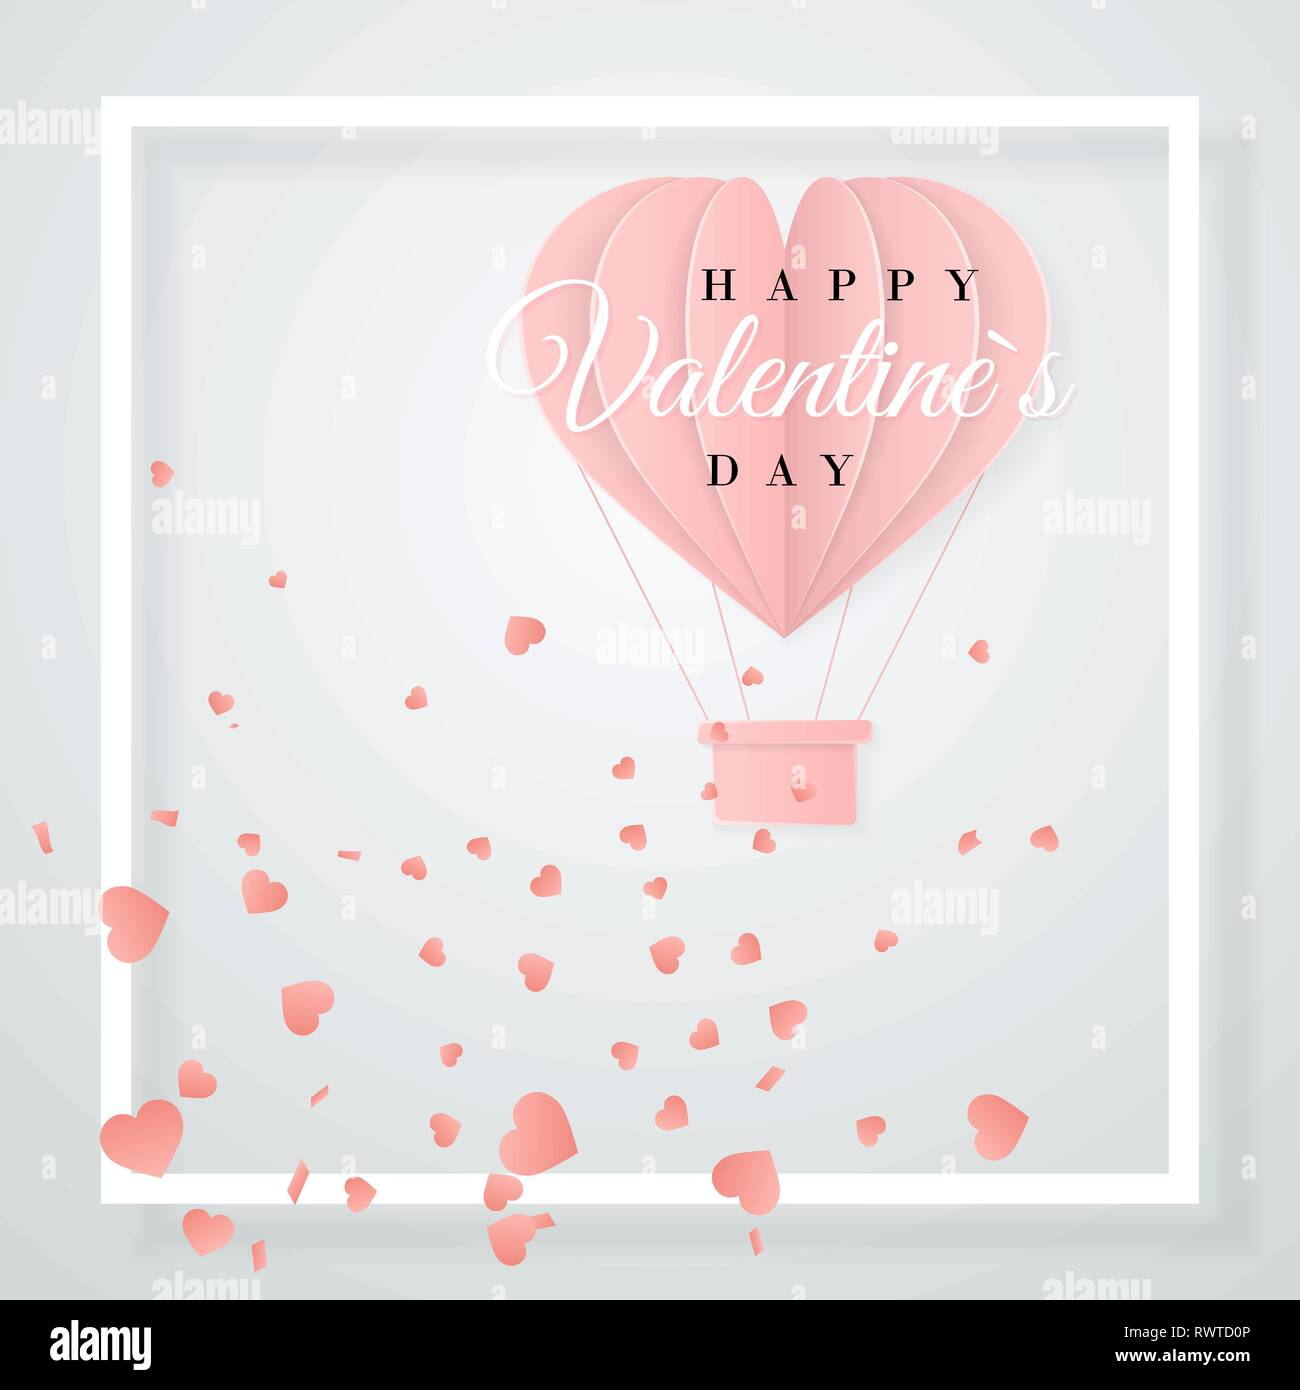 Happy valentines day origami style hearts banner Vector Image | 1390x1300